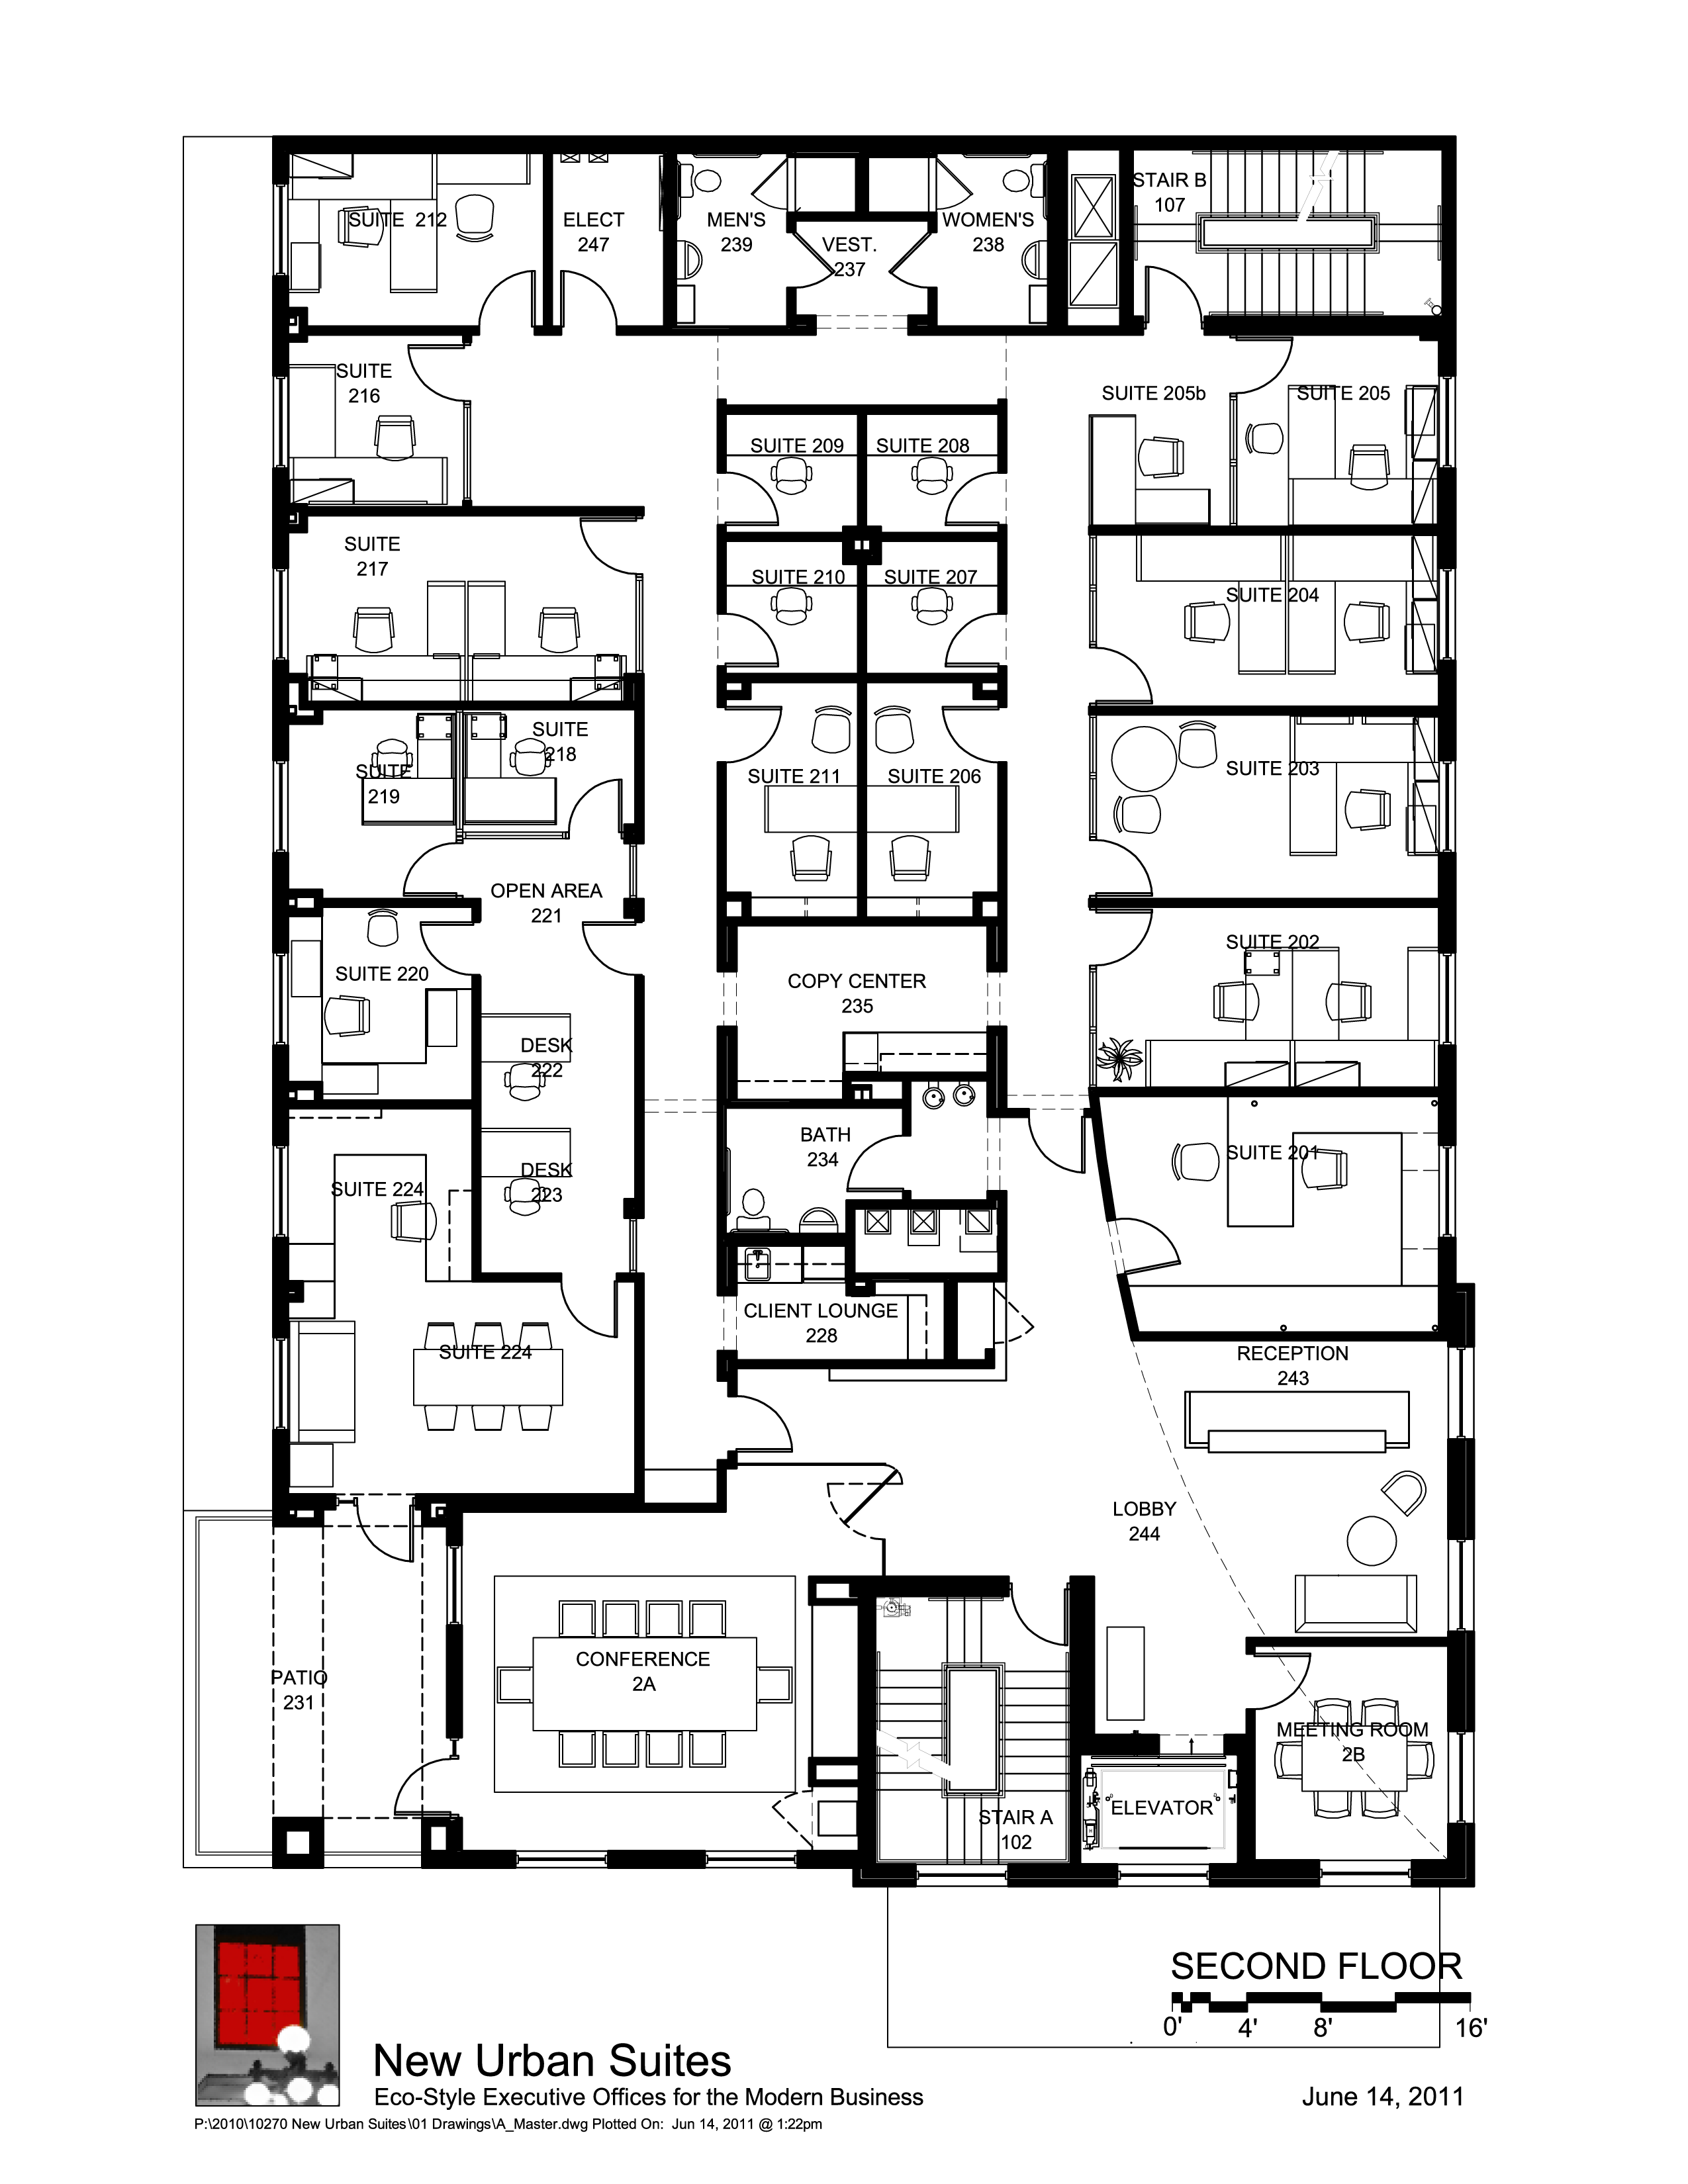 Take A Look At Our Floor Plans For Offices To Rent On The 2nd Floor Office Tampa Office Floor Plan Hospital Floor Plan Floor Plans